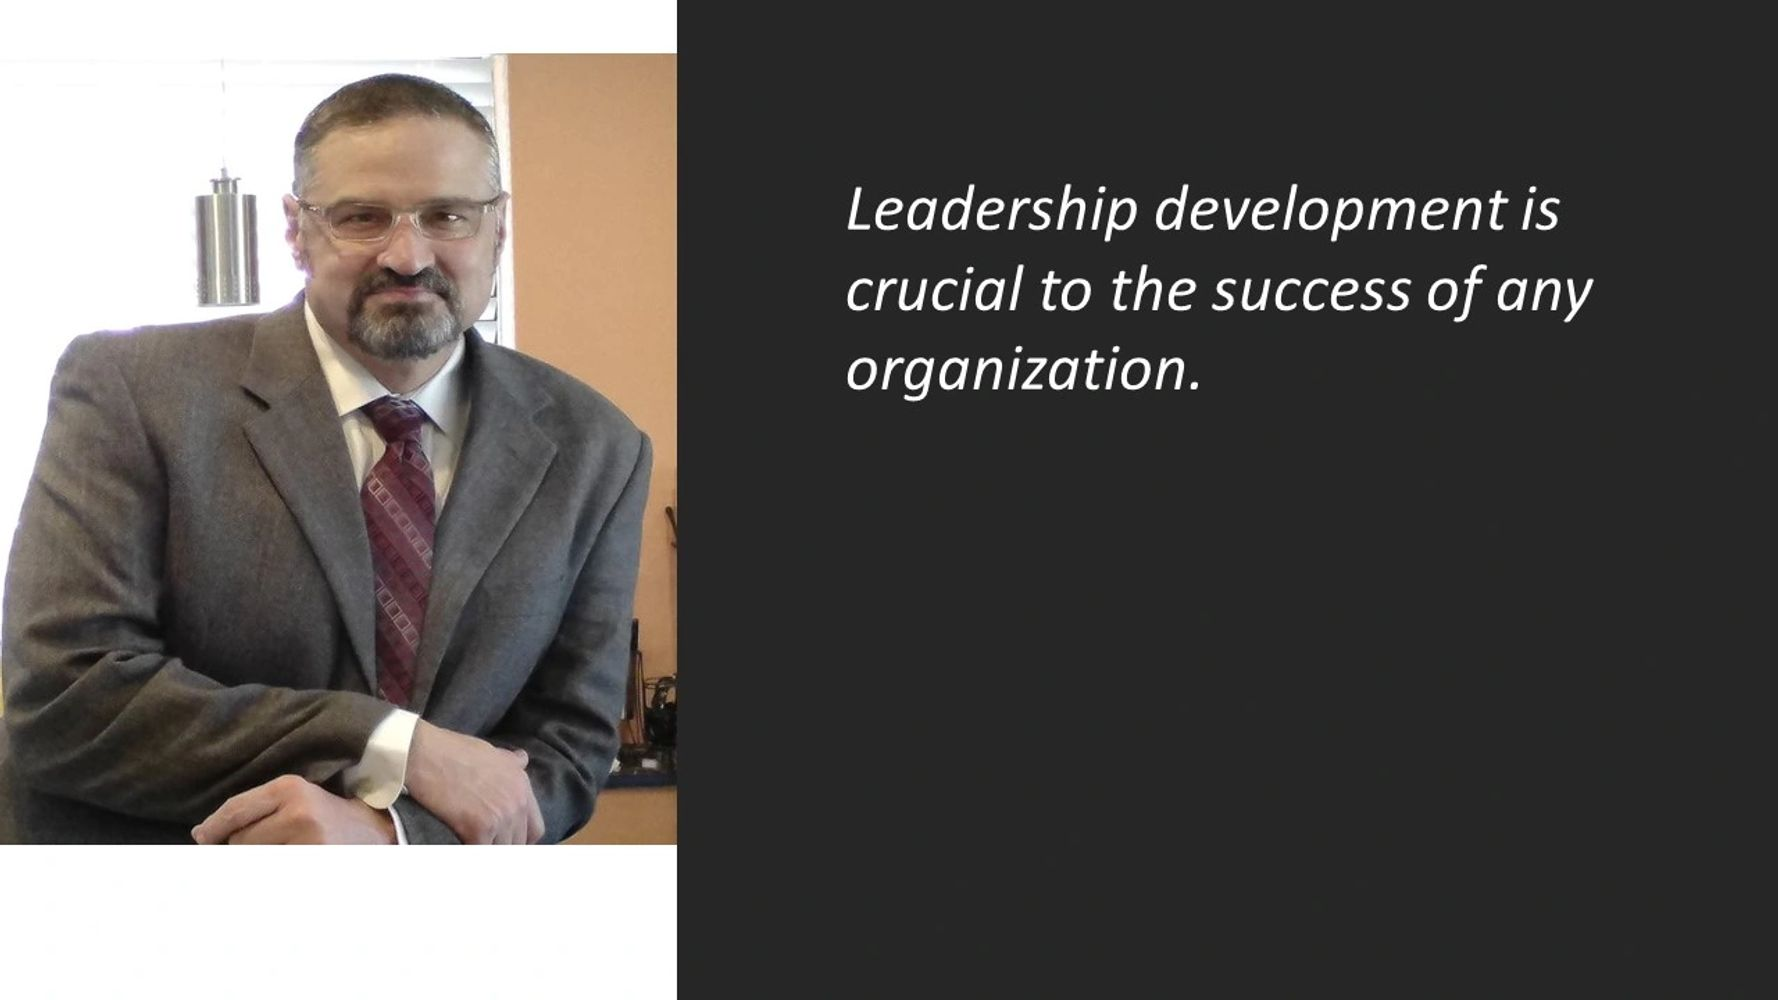 Leadership development is crucial to the success of any organization.